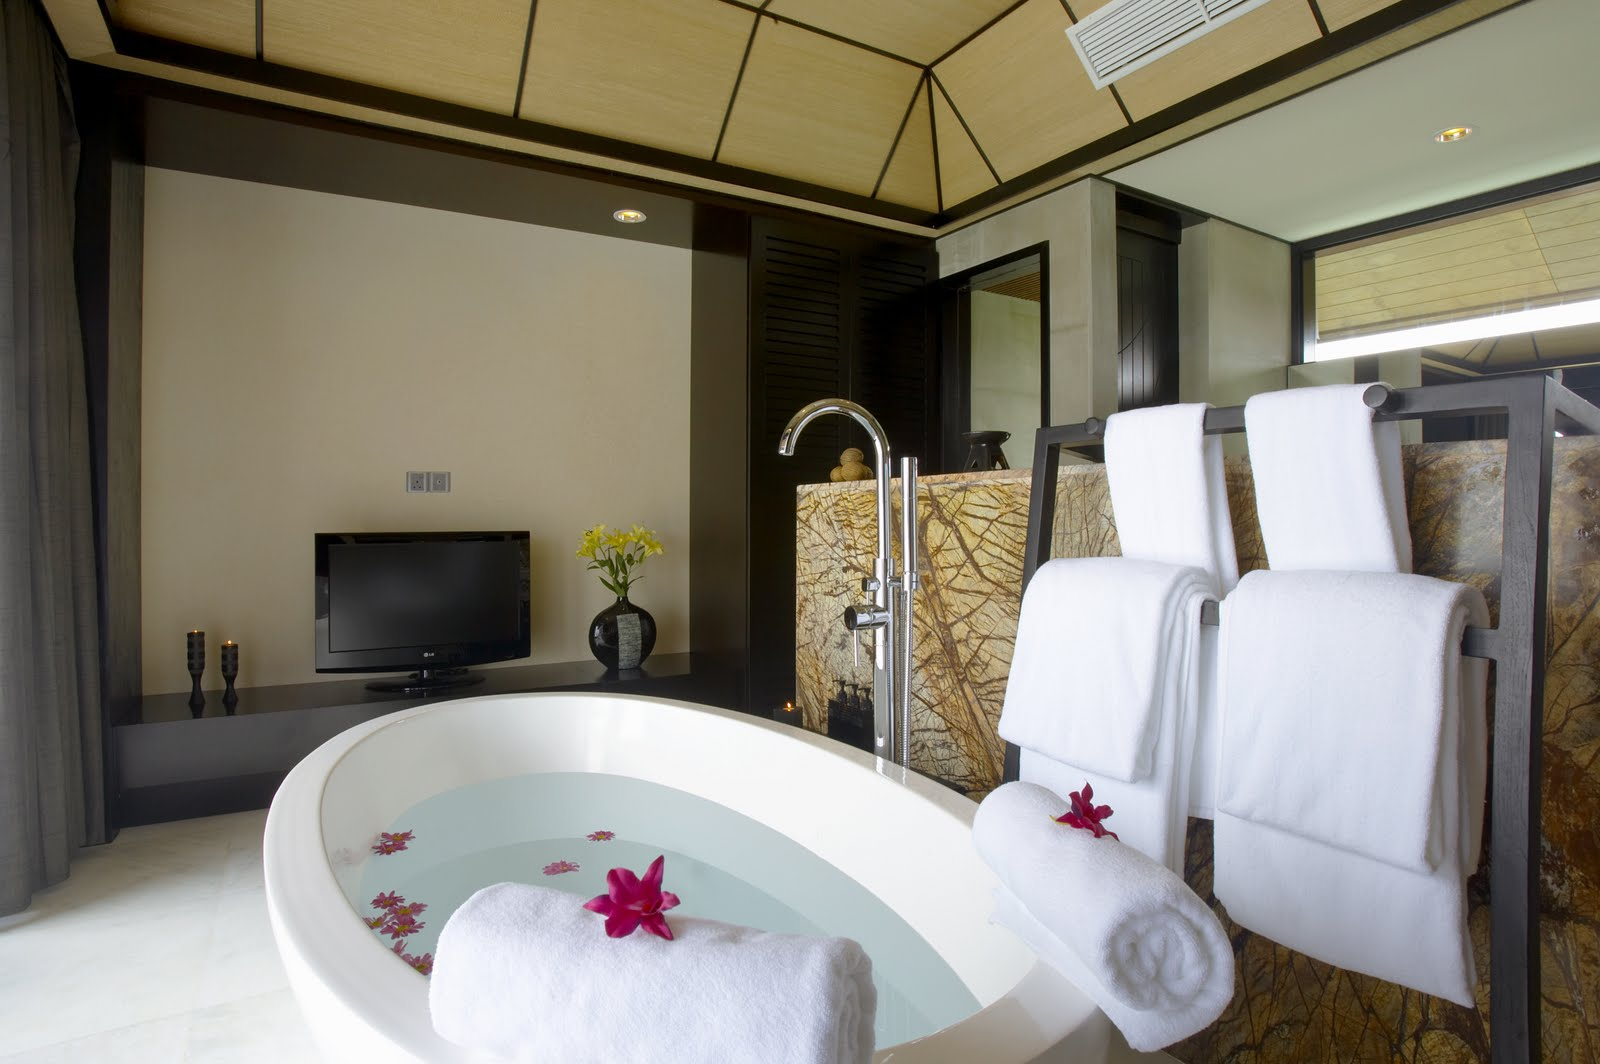 images of small decorated living rooms room furniture used bathroom decorating ideas - new trendy washroom designs